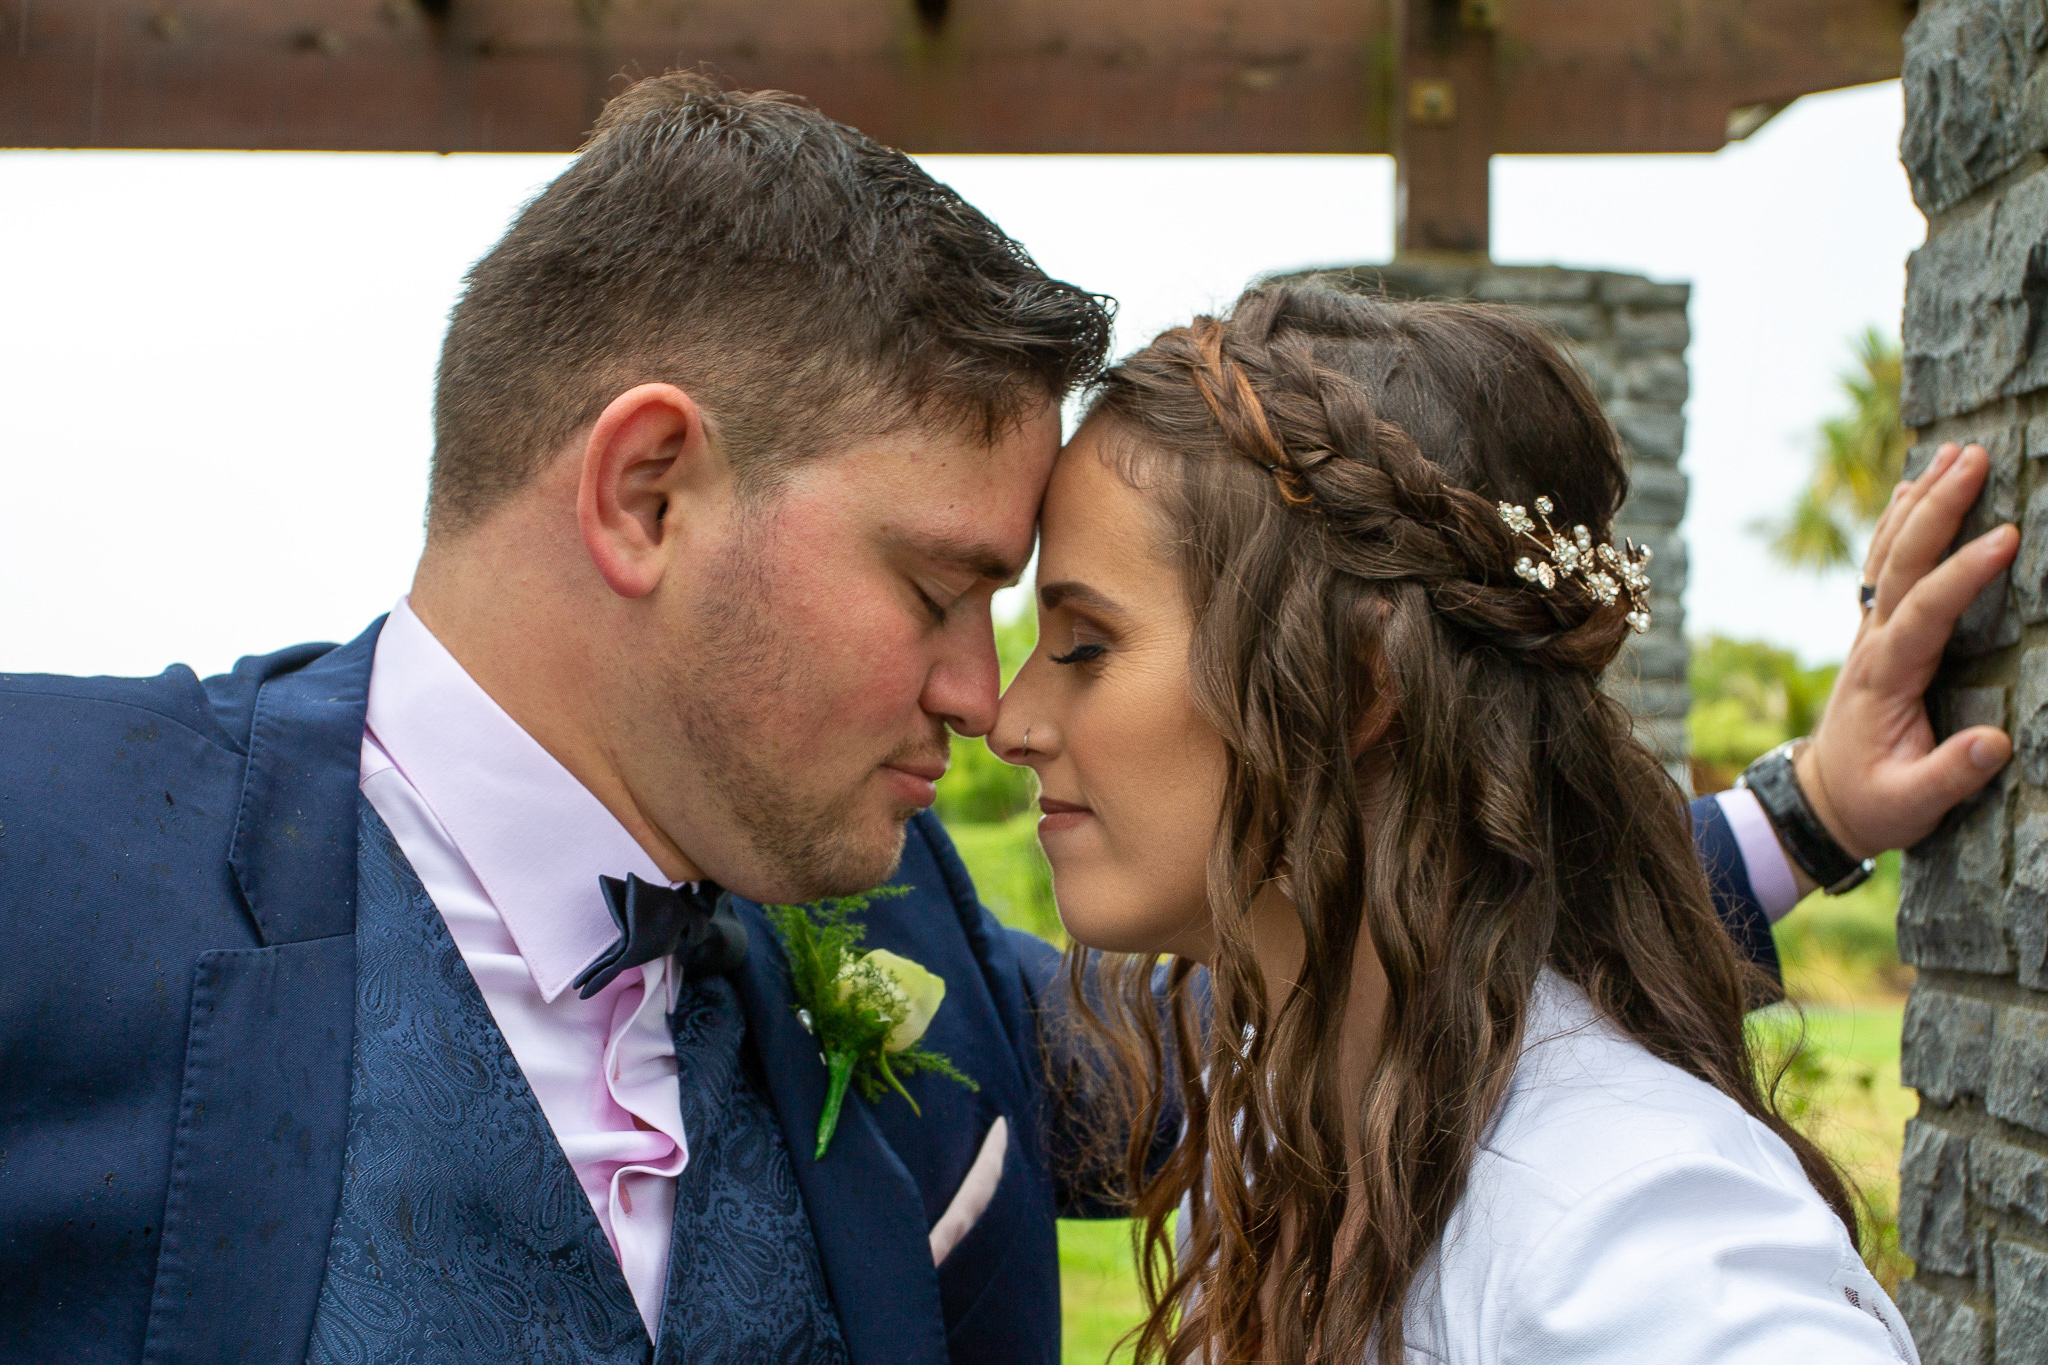 K&J Wedding, April '19